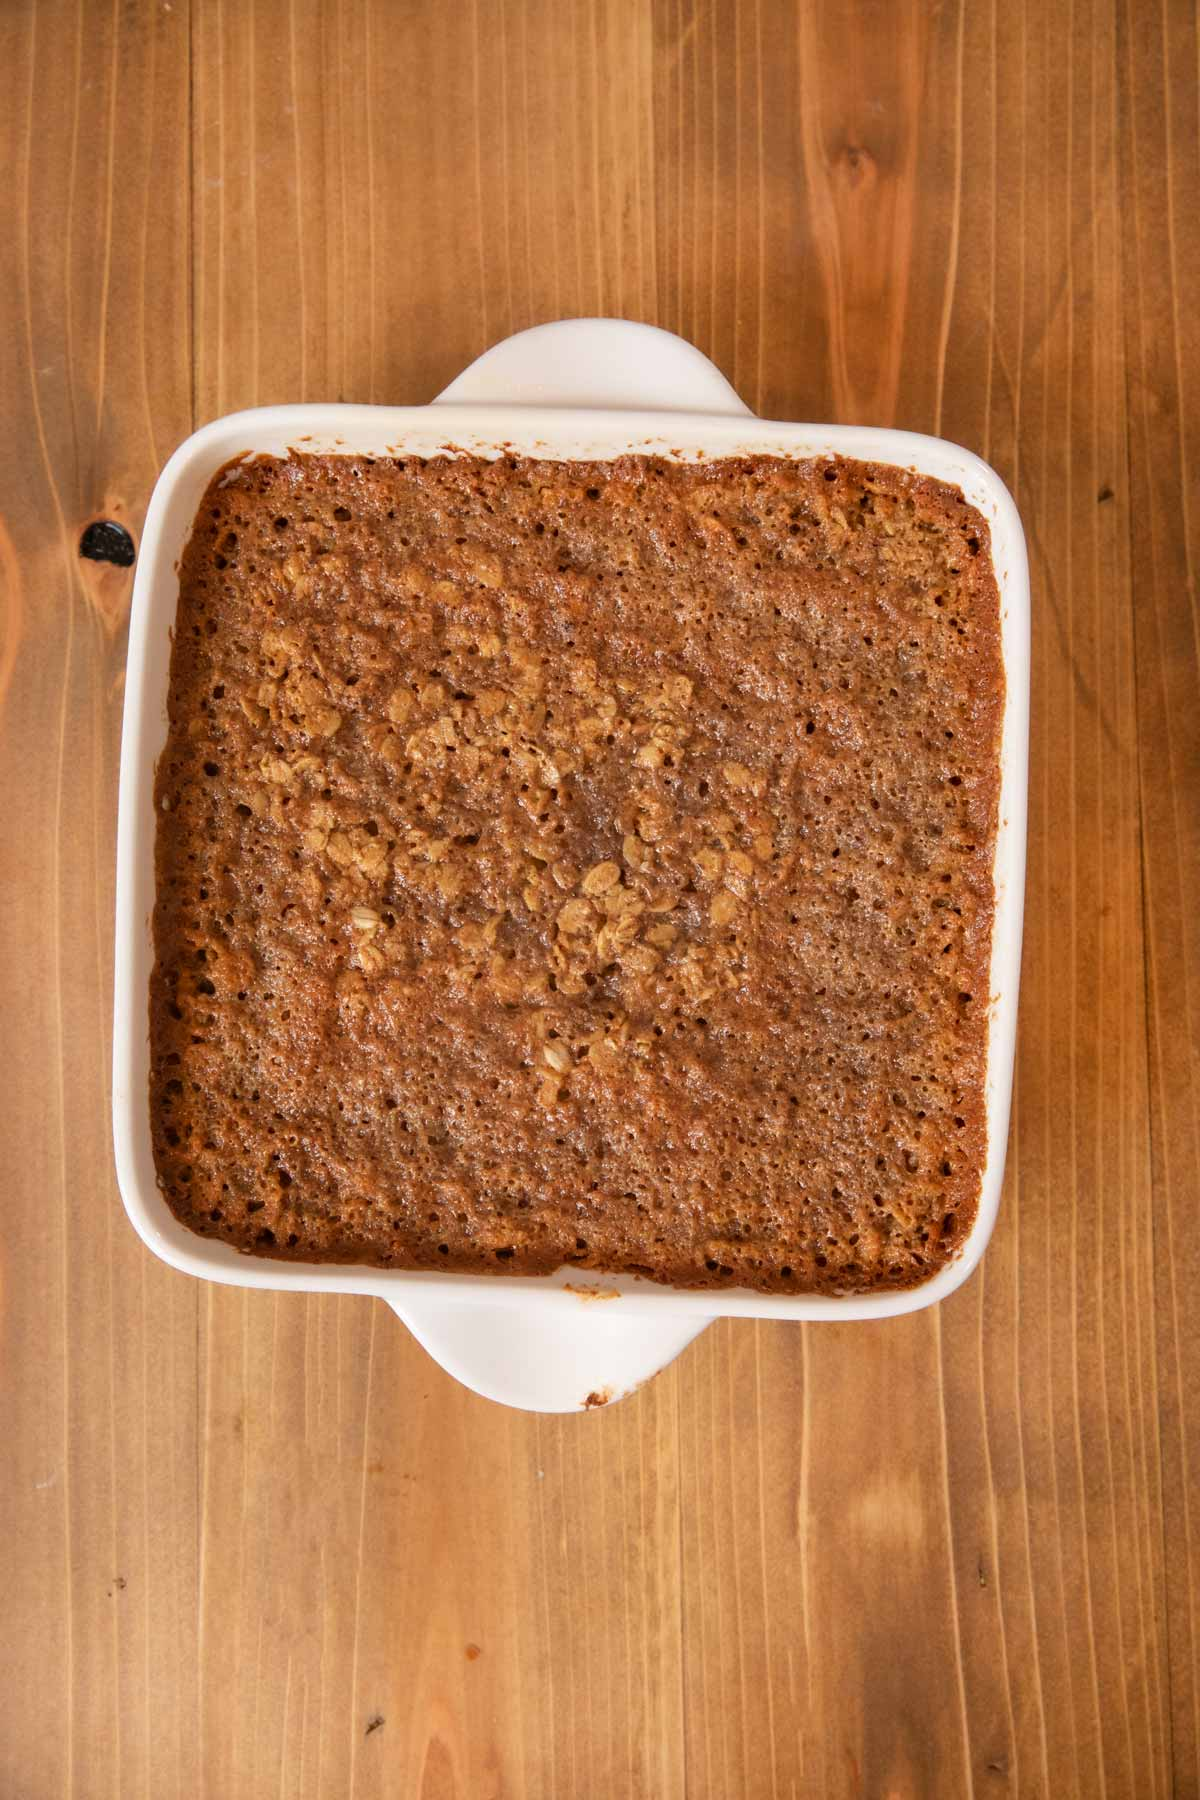 Baked Oatmeal in baking dish